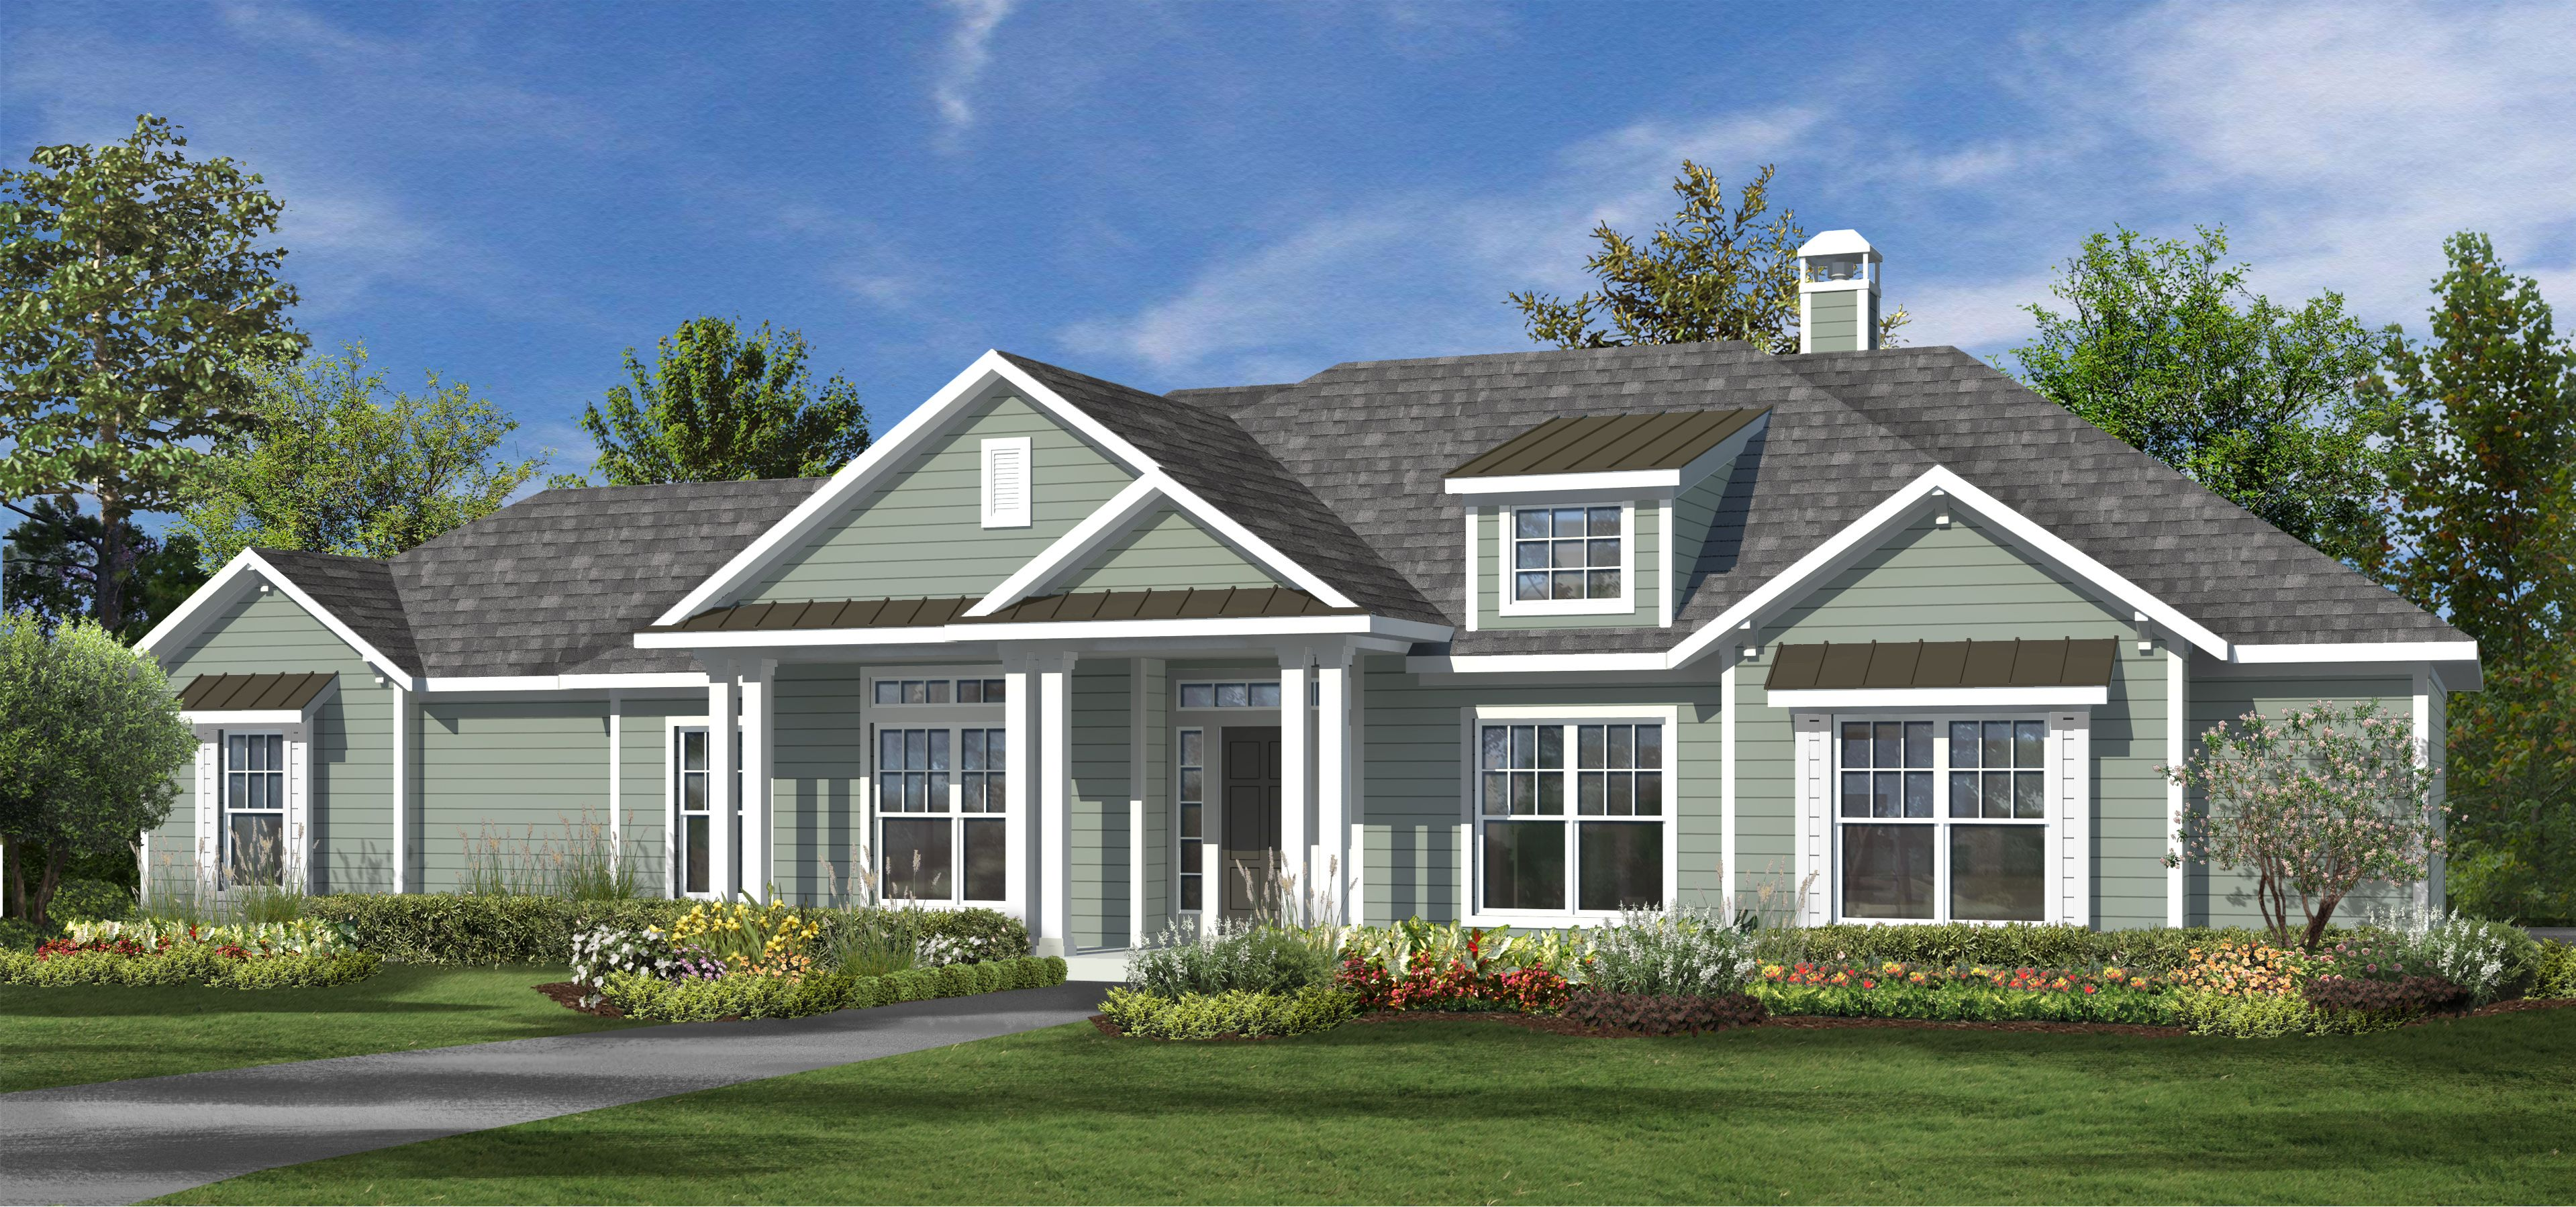 The oakmont 2000 plus sq ft custom home plans design Oakmont home builders